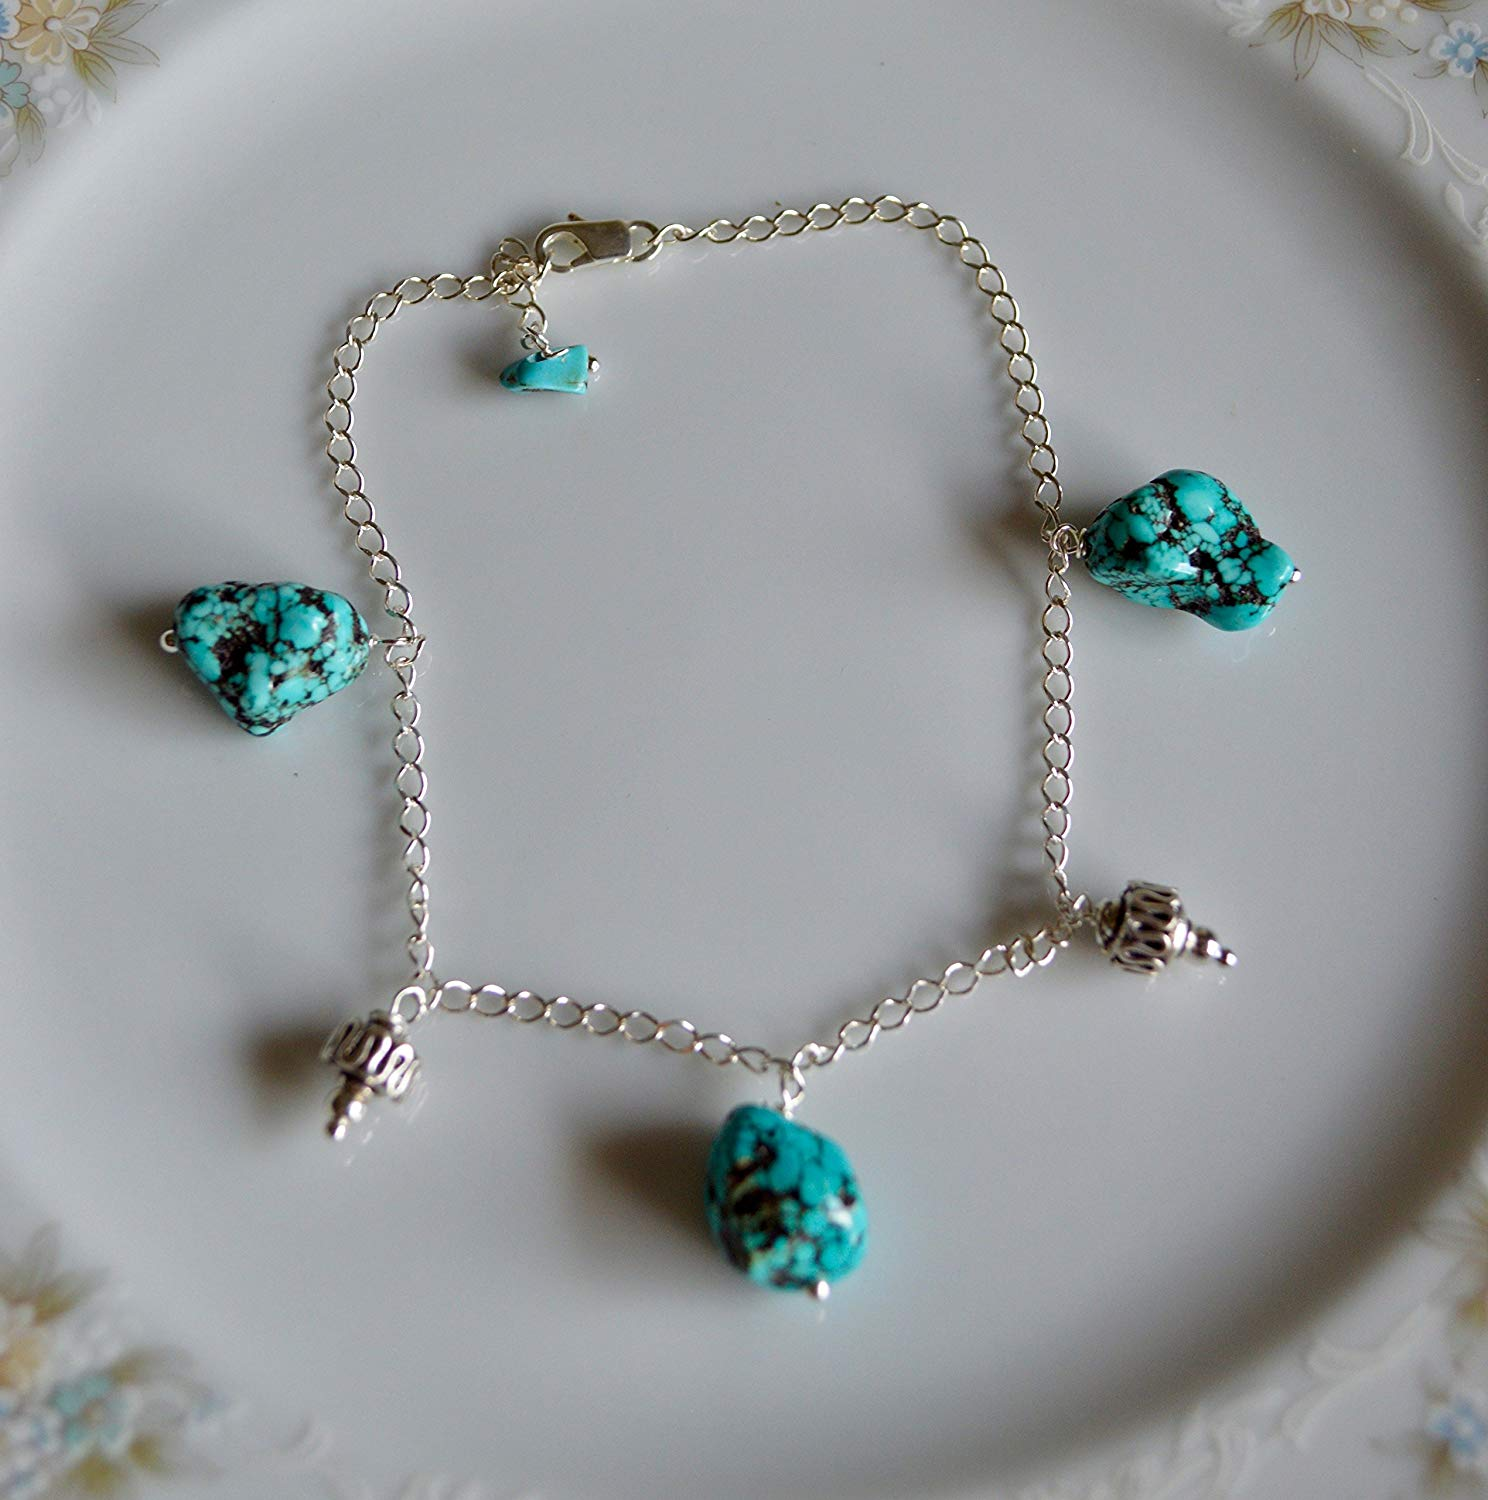 Turquoise nugget and bali bead sterling silver anklet, cruise wear, beach jewelry